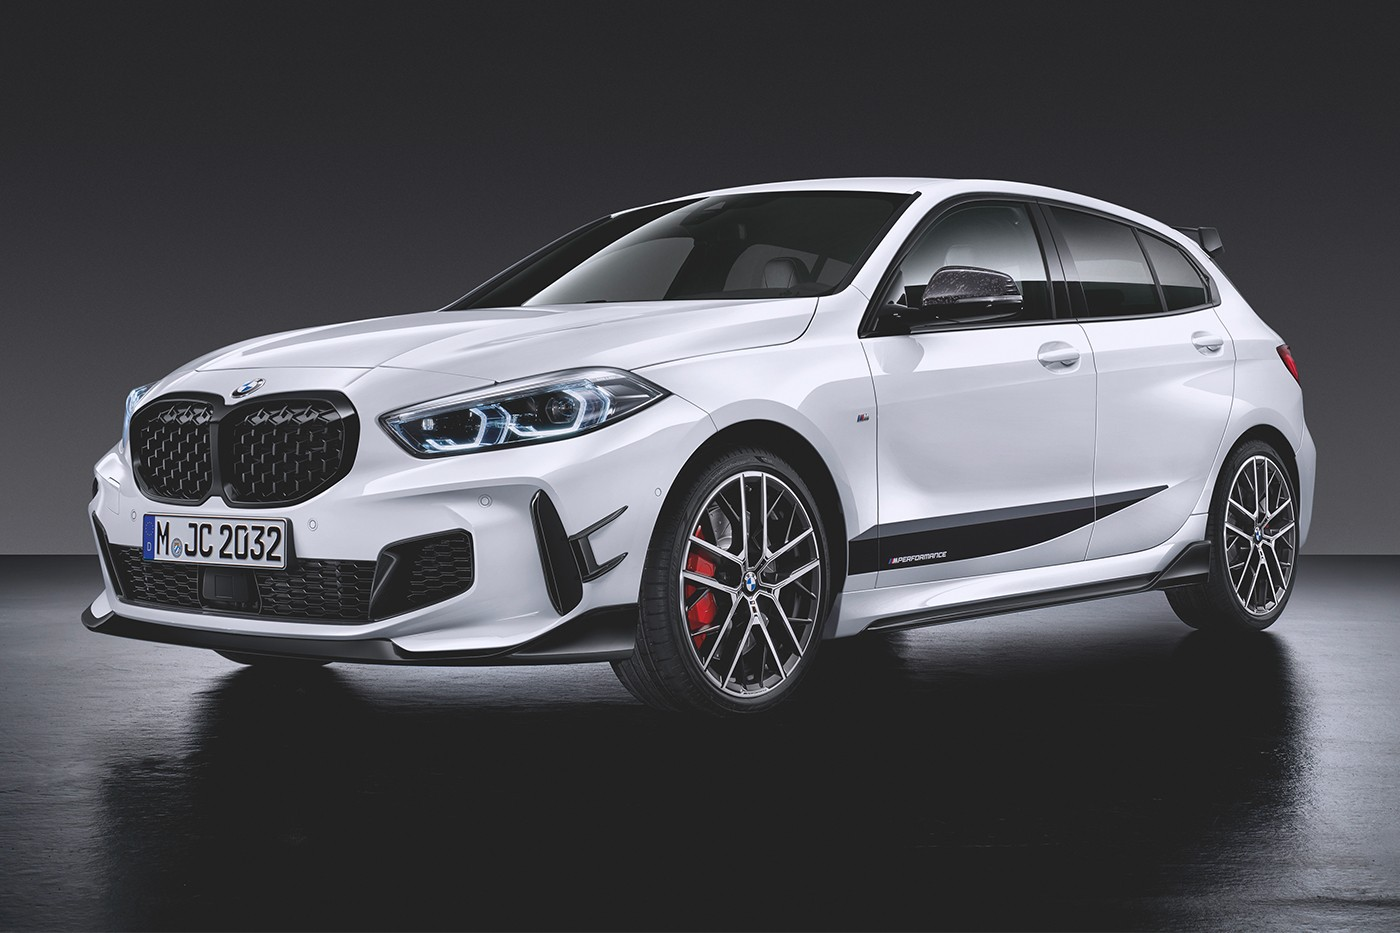 2019 bmw 1 series m performance options hypebeast2019 bmw 1 series m performance options parts automotive sports cars racing aerodynamic and exterior components